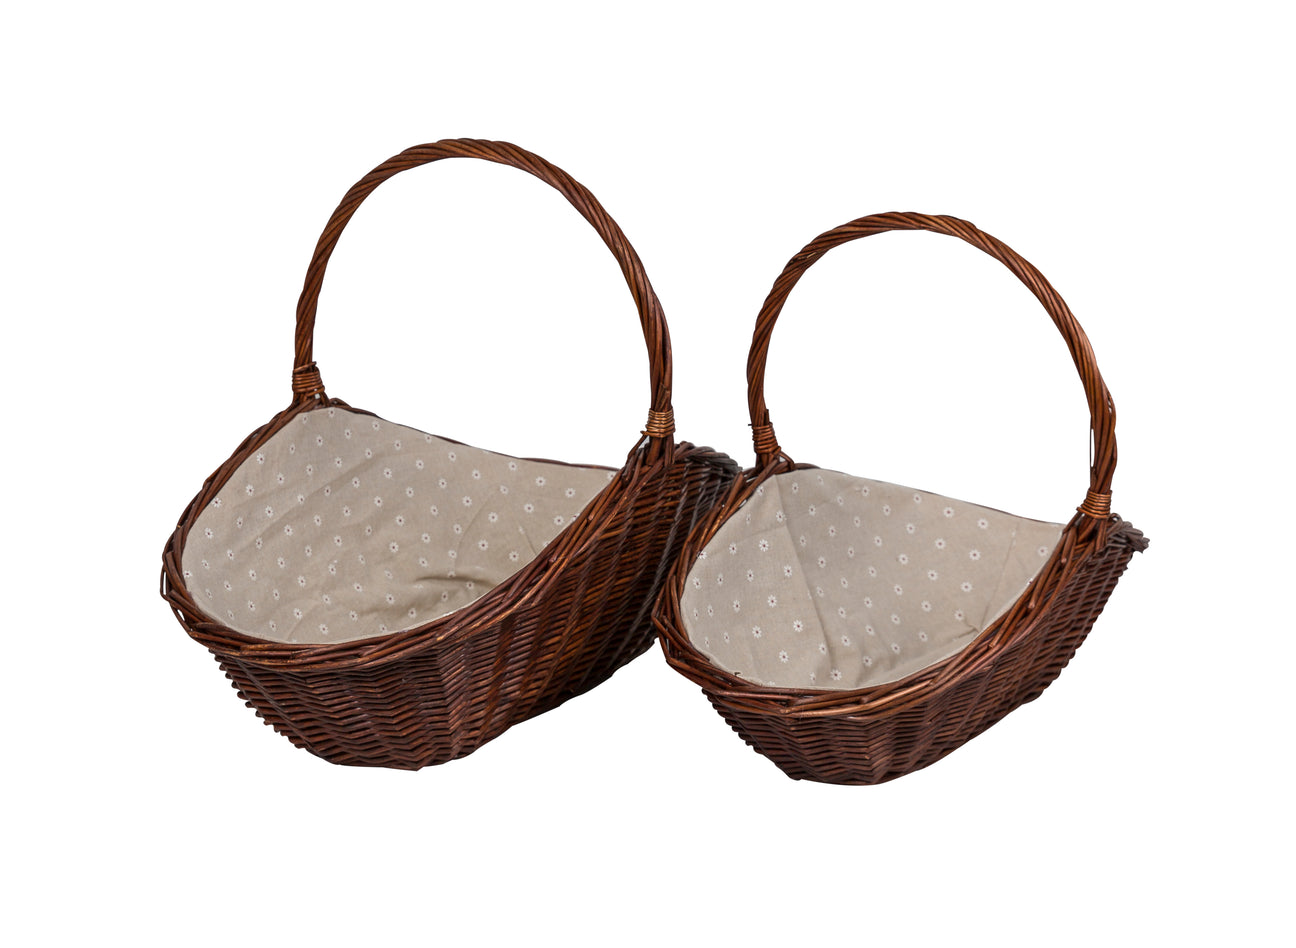 Image of a large and small wicker basket